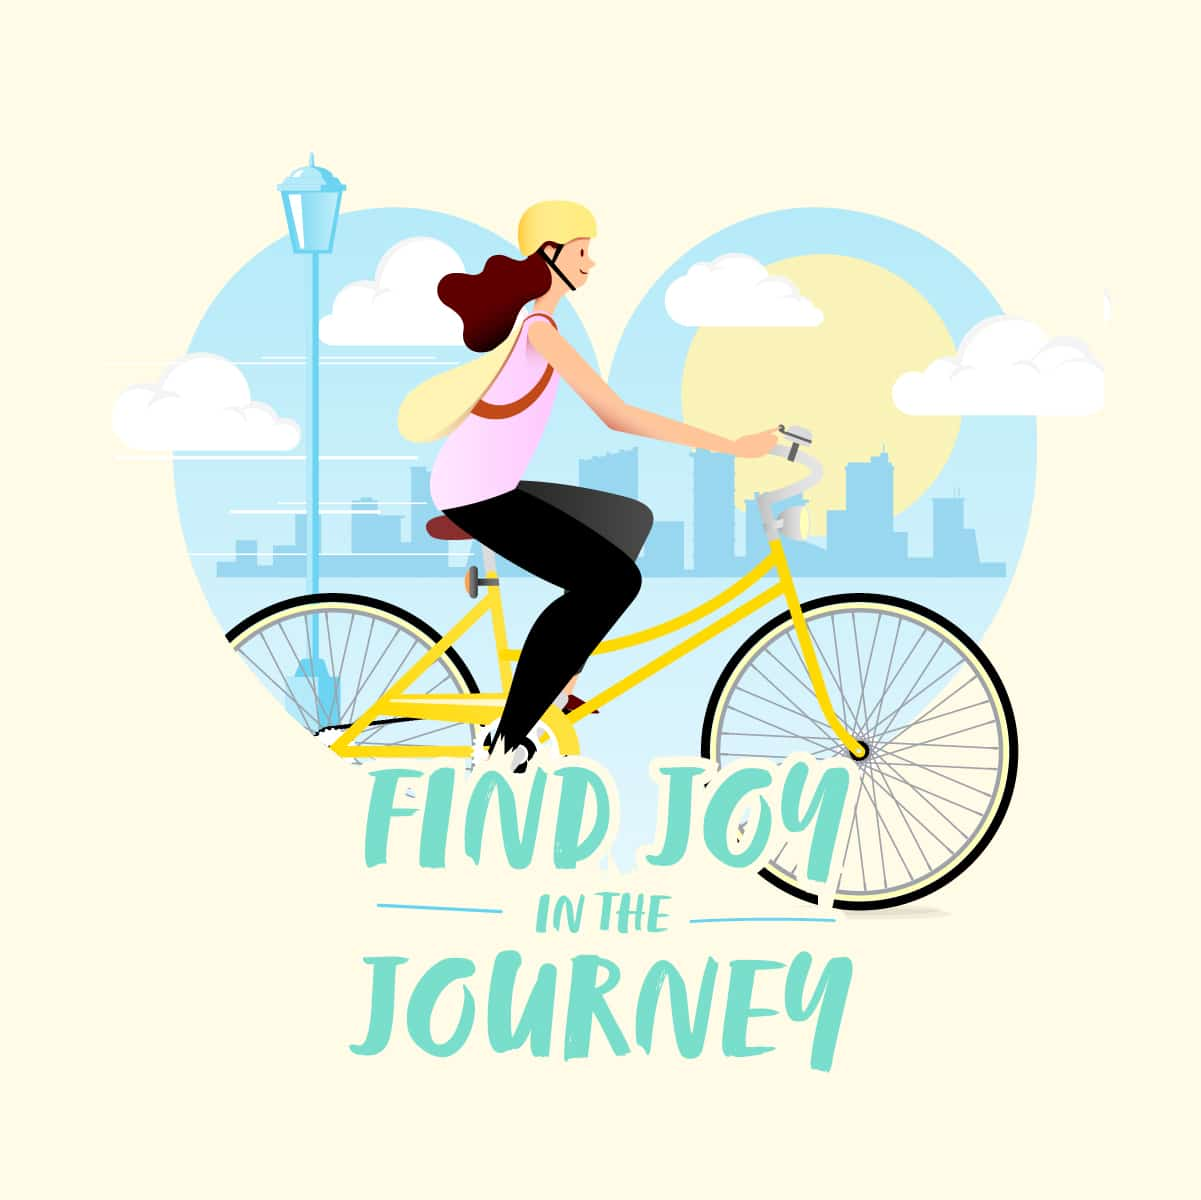 Find joy in the journey - woman cycling